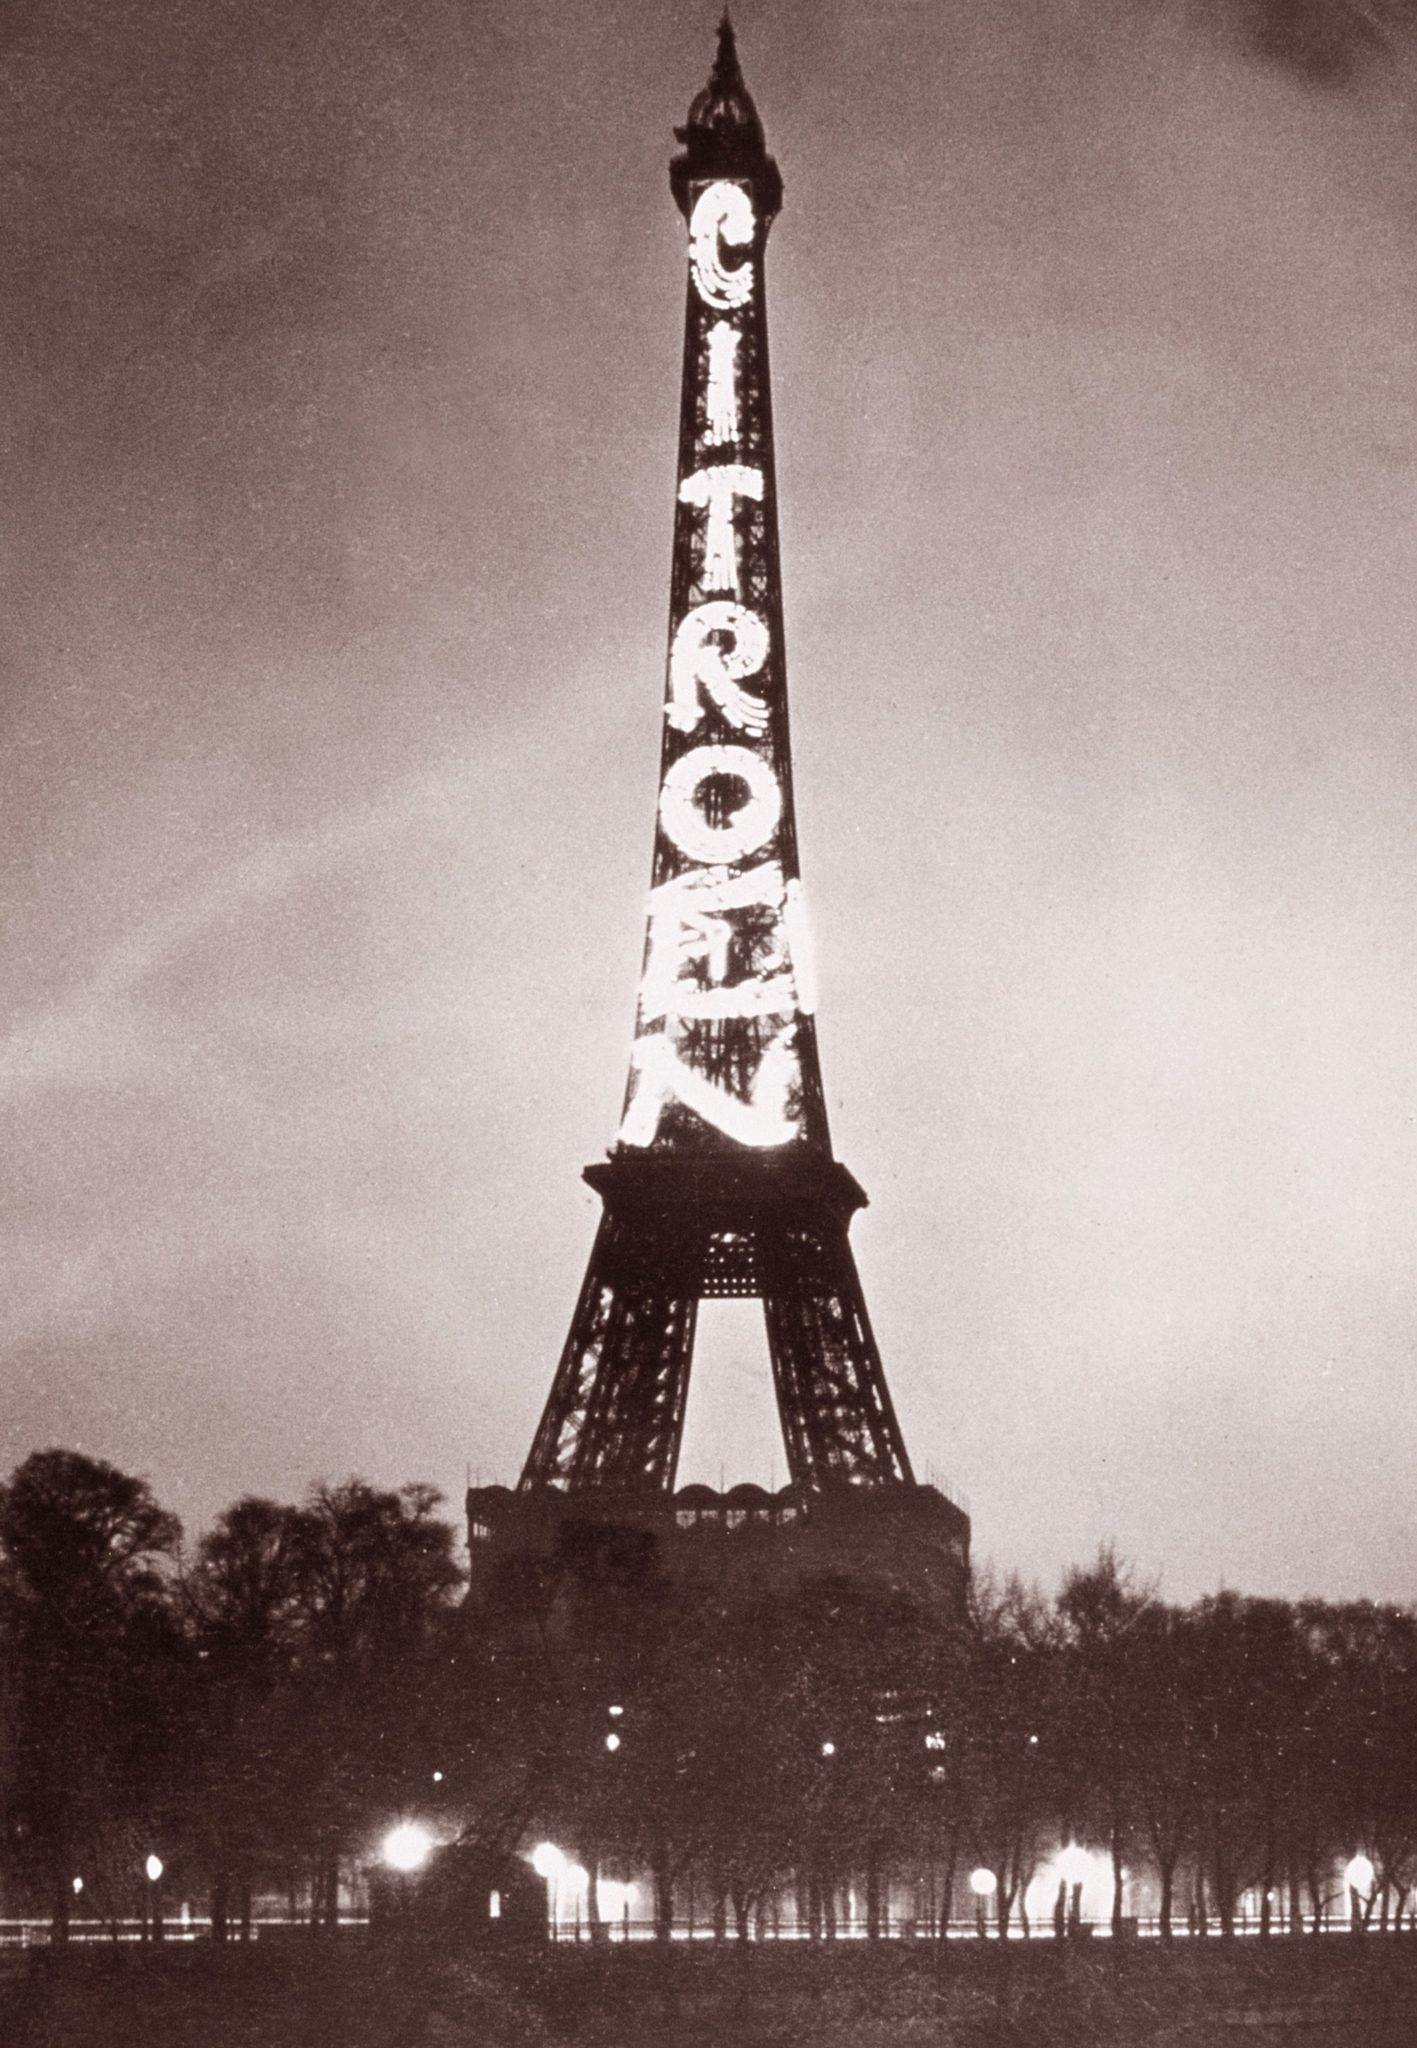 Citroën, a French car manufacturer, using the Eiffel Tower to advertise the company during the International Exhibition of Modern Decorative and Industrial Arts in 1925